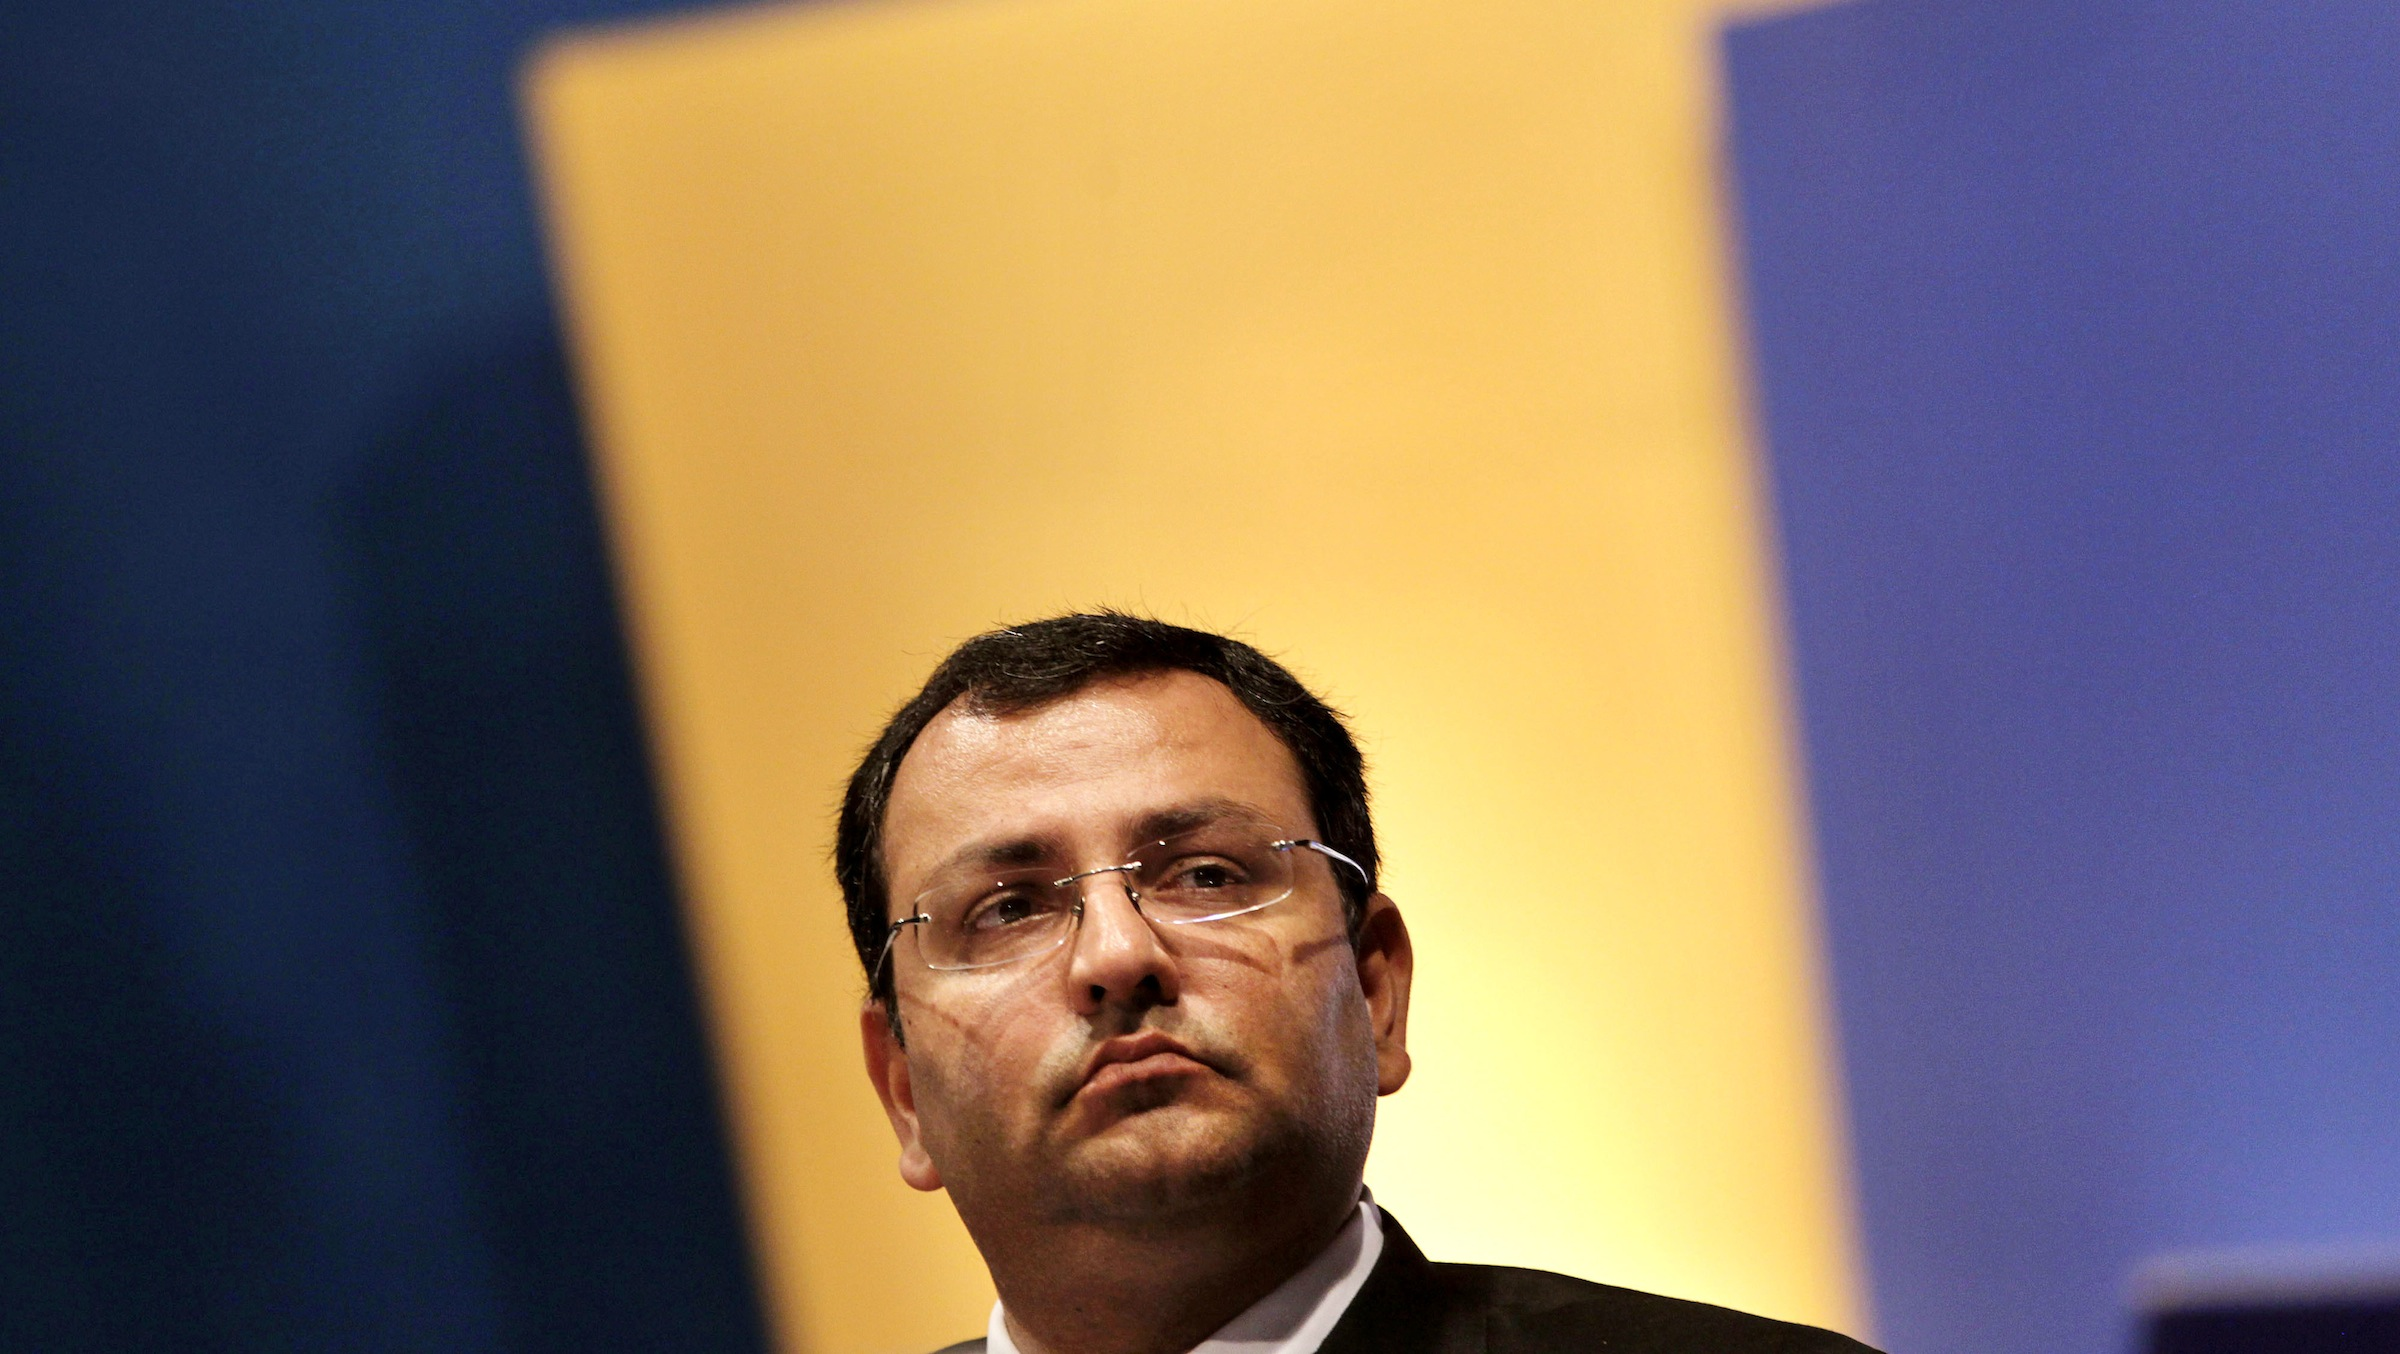 Tata Sons Deputy Chairman Cyrus Mistry watches during Tata Consultancy Services annual general meeting in Mumbai, India, Friday, June 29, 2012. (AP Photo/Rajanish Kakade)